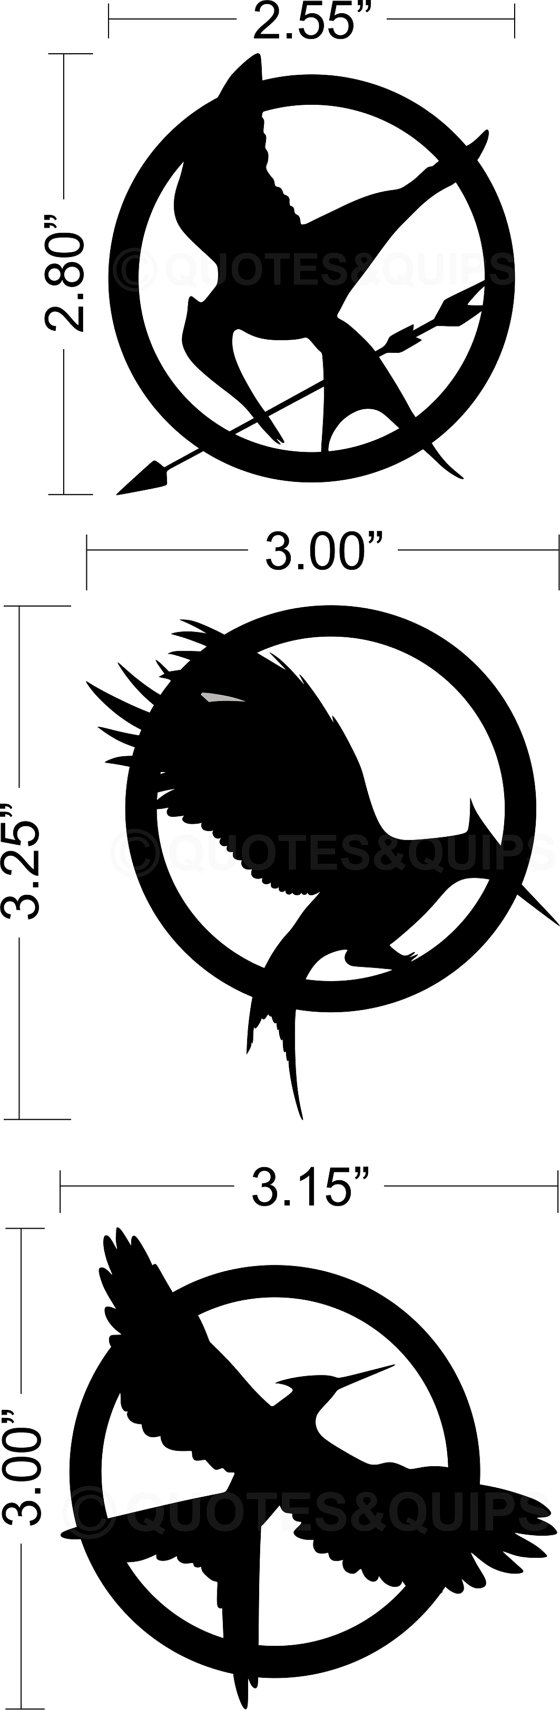 Mockingjay Pin by Doveswing on DeviantArt |Hunger Games Mockingjay Pin Outline